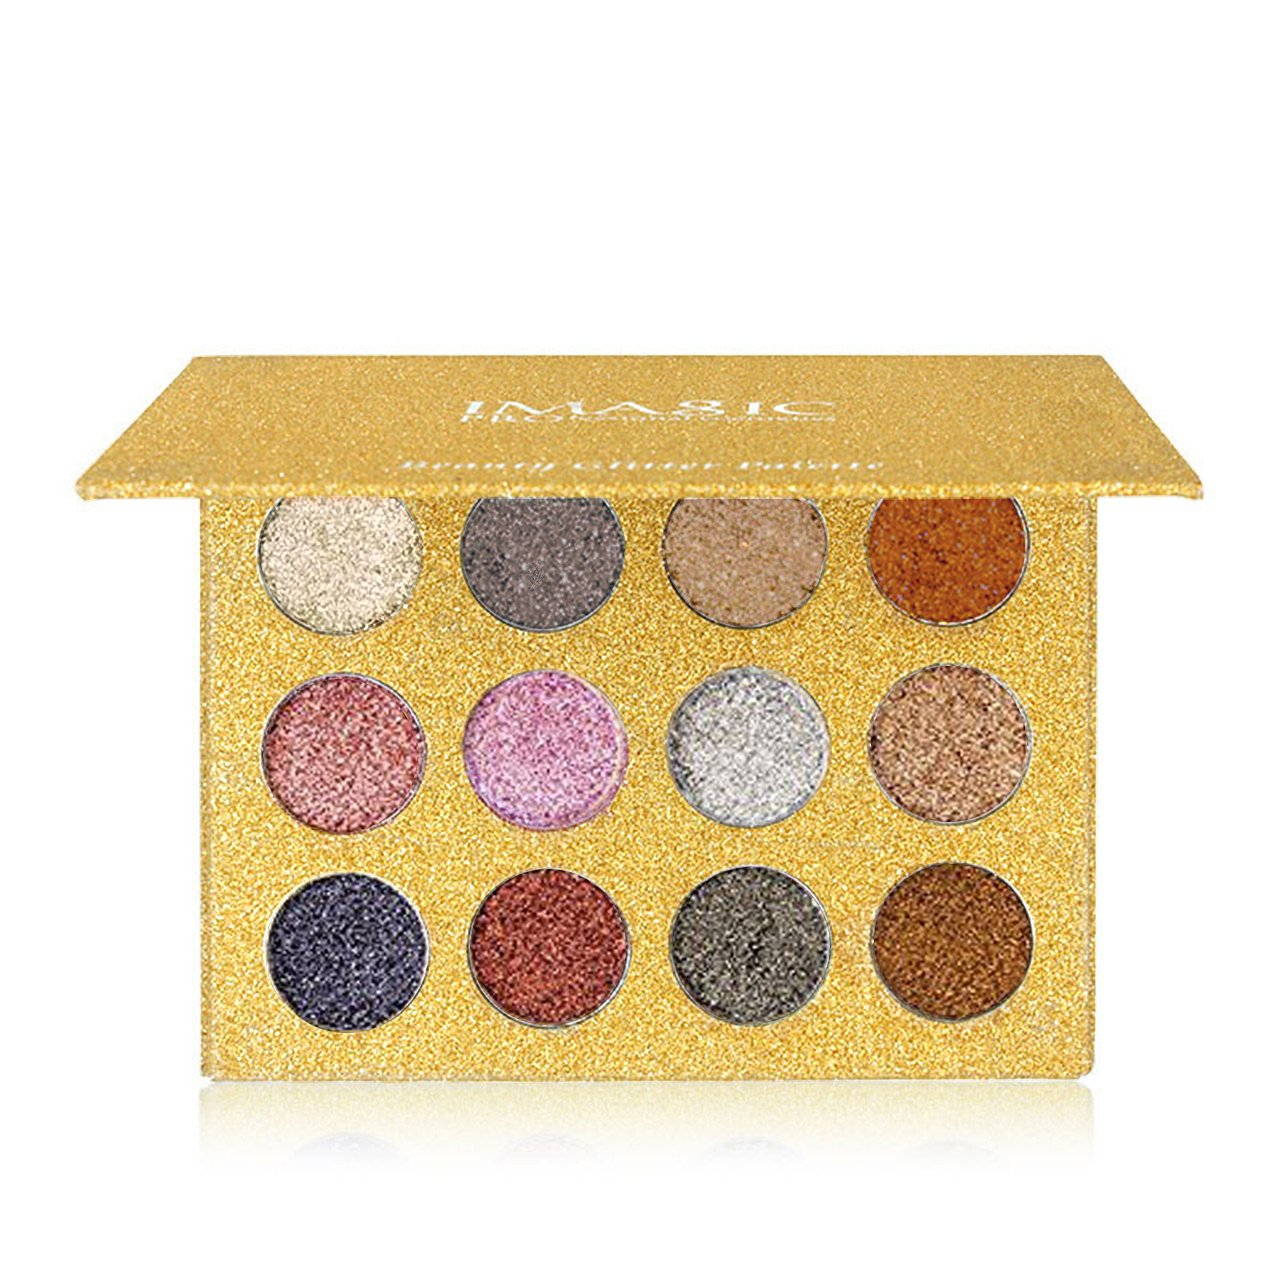 CCbeauty Metallic Eyeshadow Palette Glitter Eye Makeup Diamond Eye Shadow Long Lasting&Shimmer Eyeshadow Highly Pigmented Eyeshadow Palette (#01)